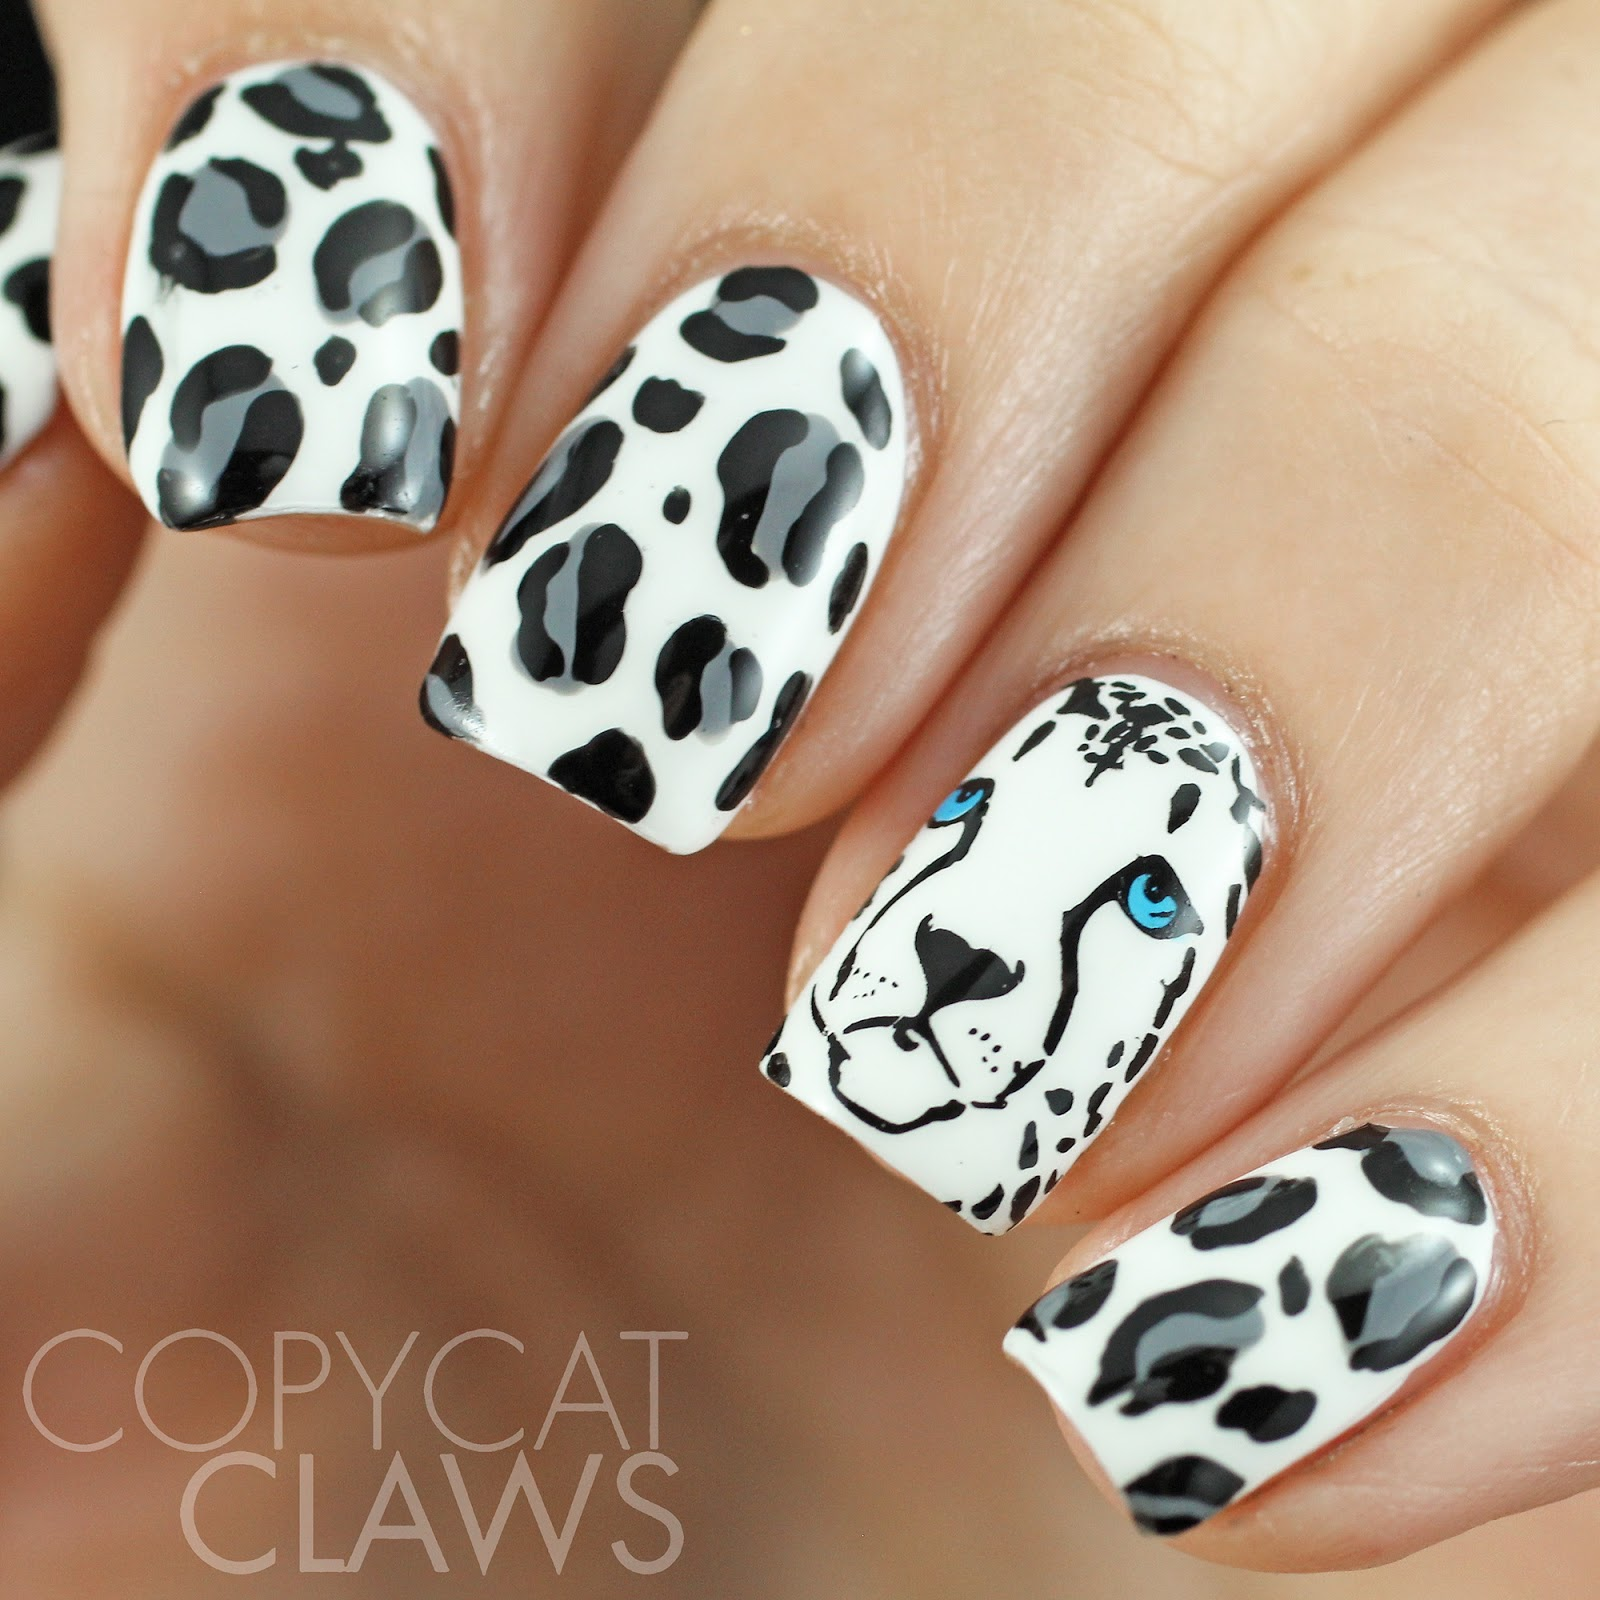 Copycat Claws: 40 Great Nail Art Ideas - Black & White